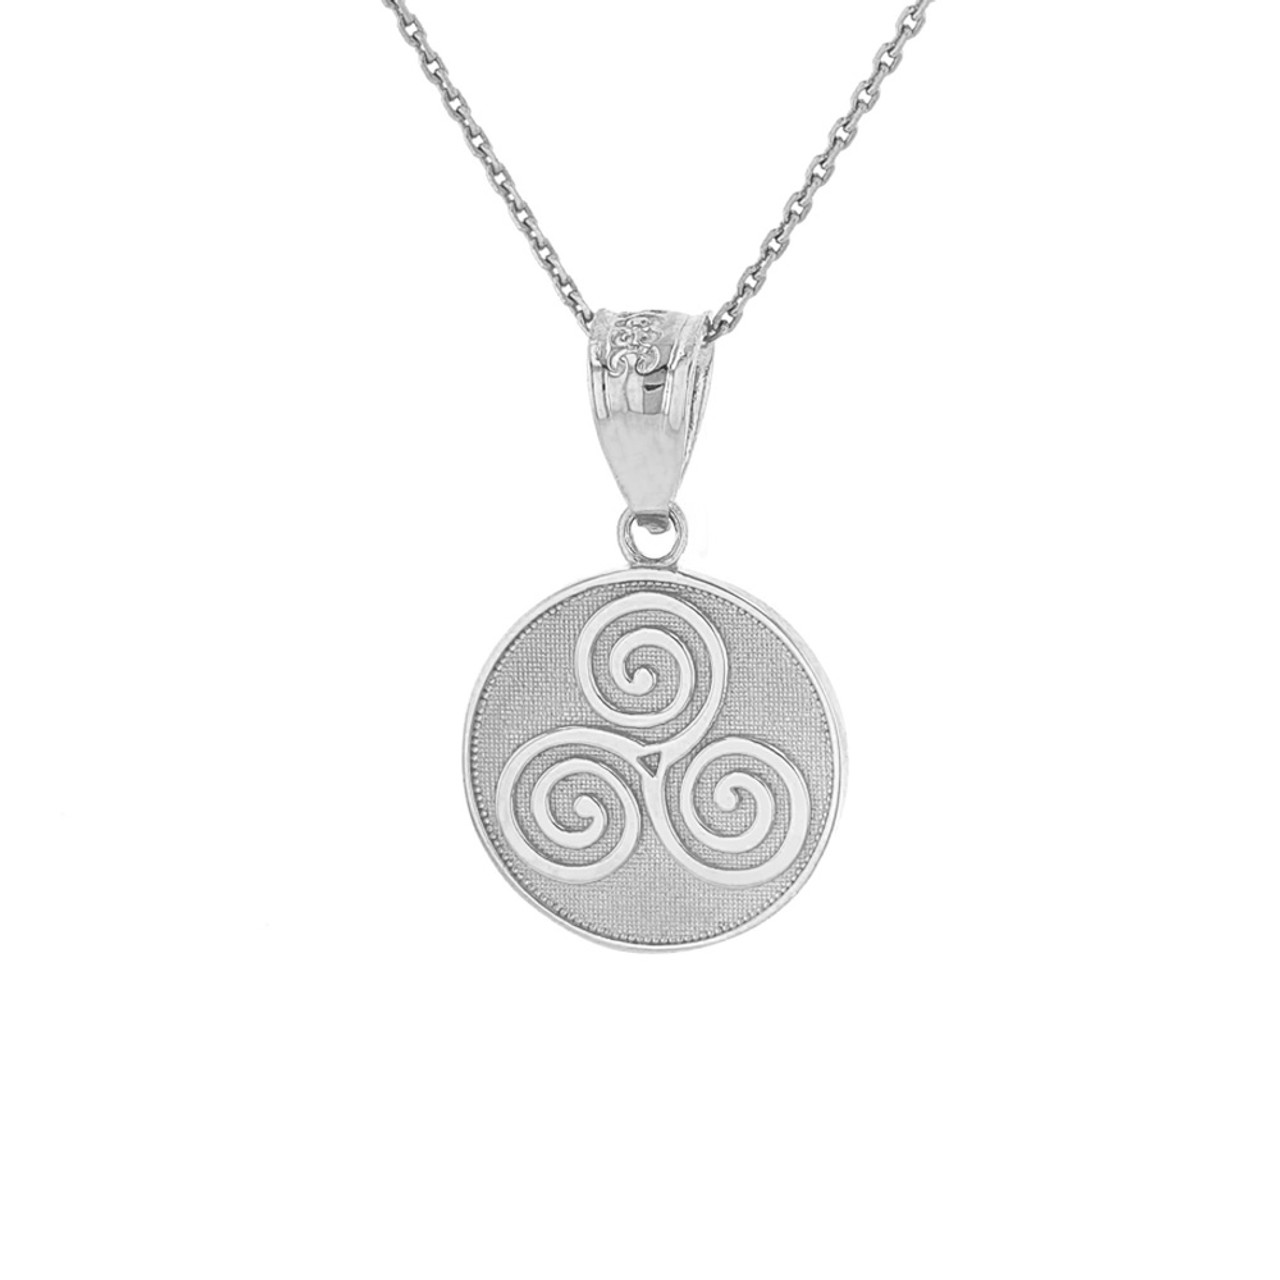 Solid white gold celtic triple spiral triskele irish knot disc solid white gold celtic triple spiral triskele irish knot disc medallion pendant necklace aloadofball Choice Image